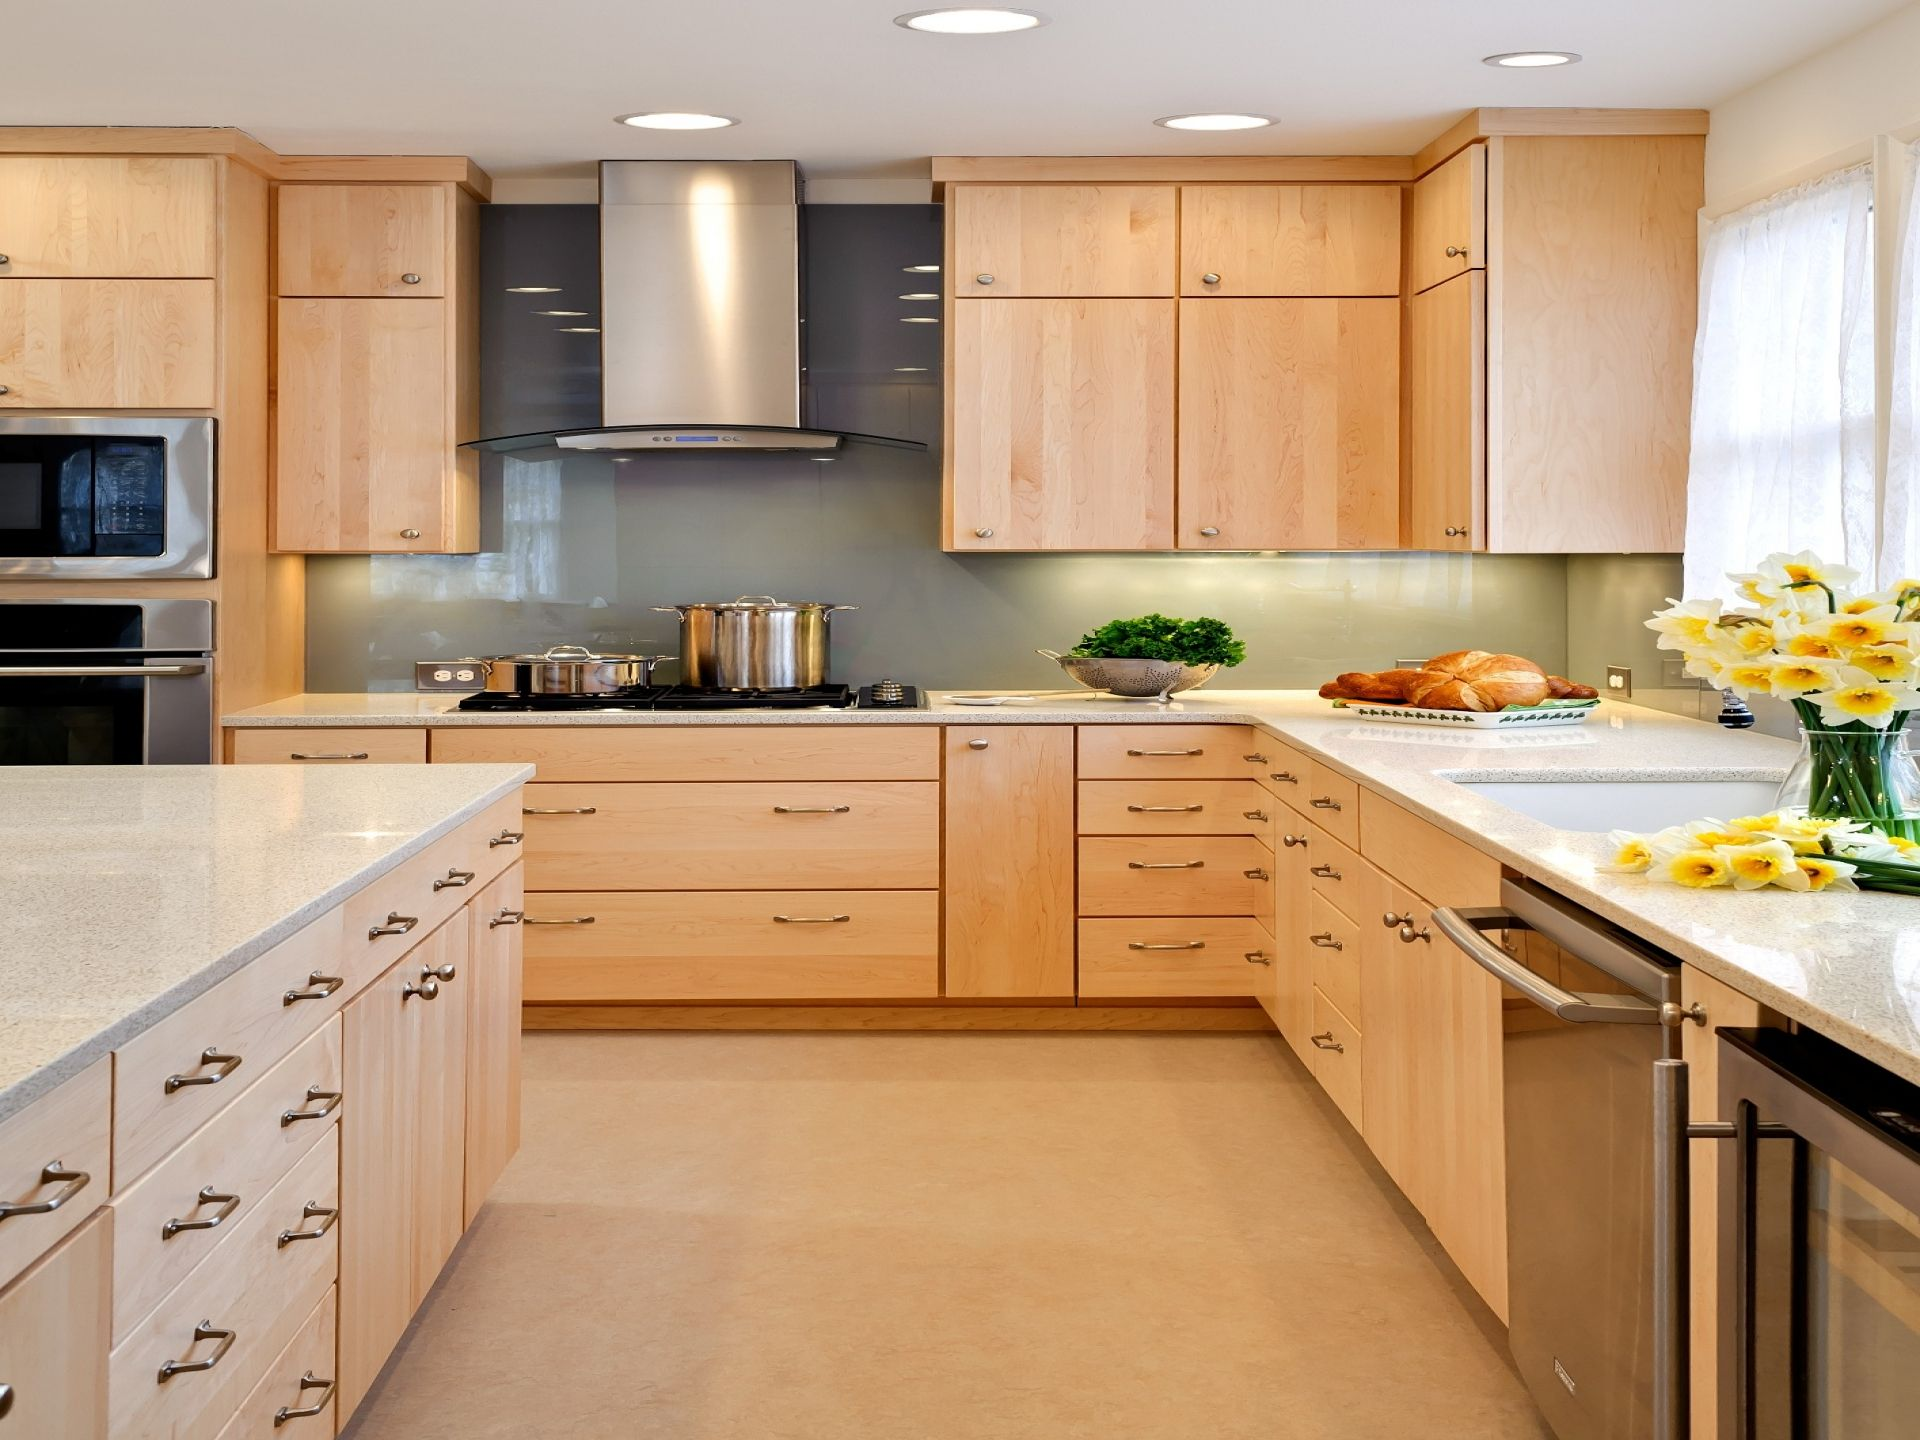 Maple Kitchen Cabinets To Have Birch Kitchen Cabinets Maple Kitchen Cabinets Kitchen Cabinets And Countertops